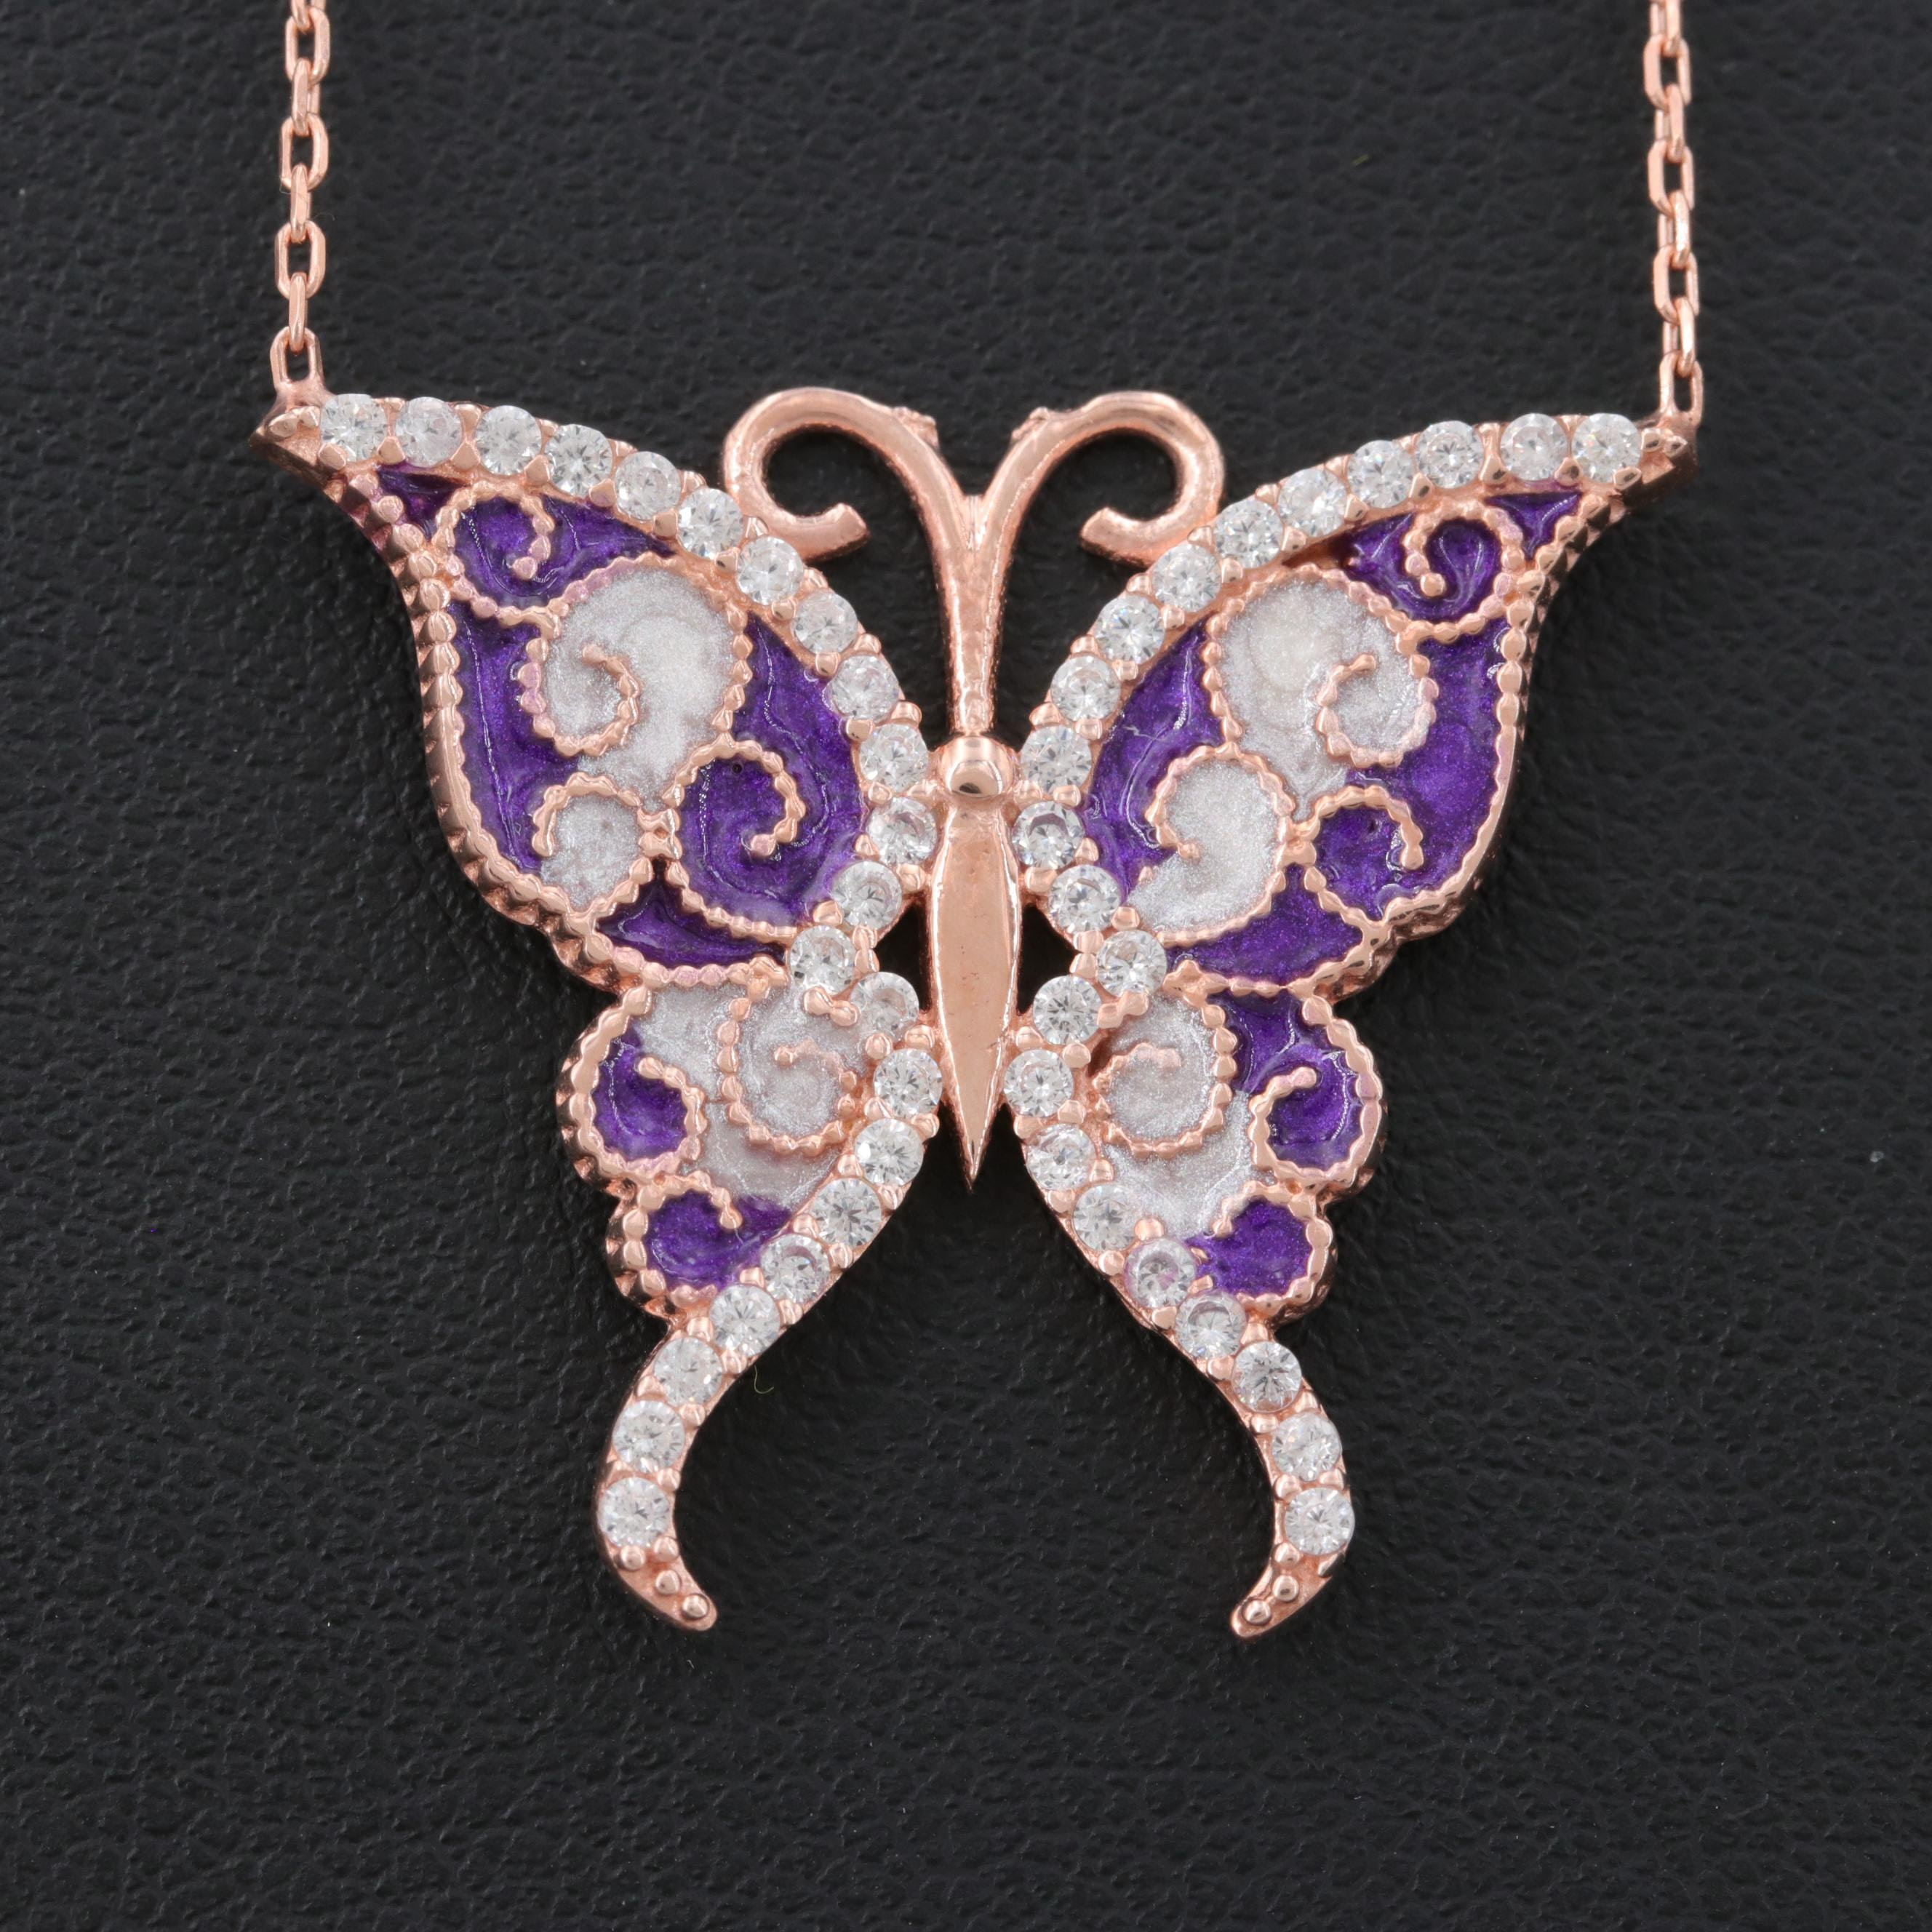 Rose Gold Wash on Sterling Silver Cubic Zirconia Butterfly Necklace with Enamel